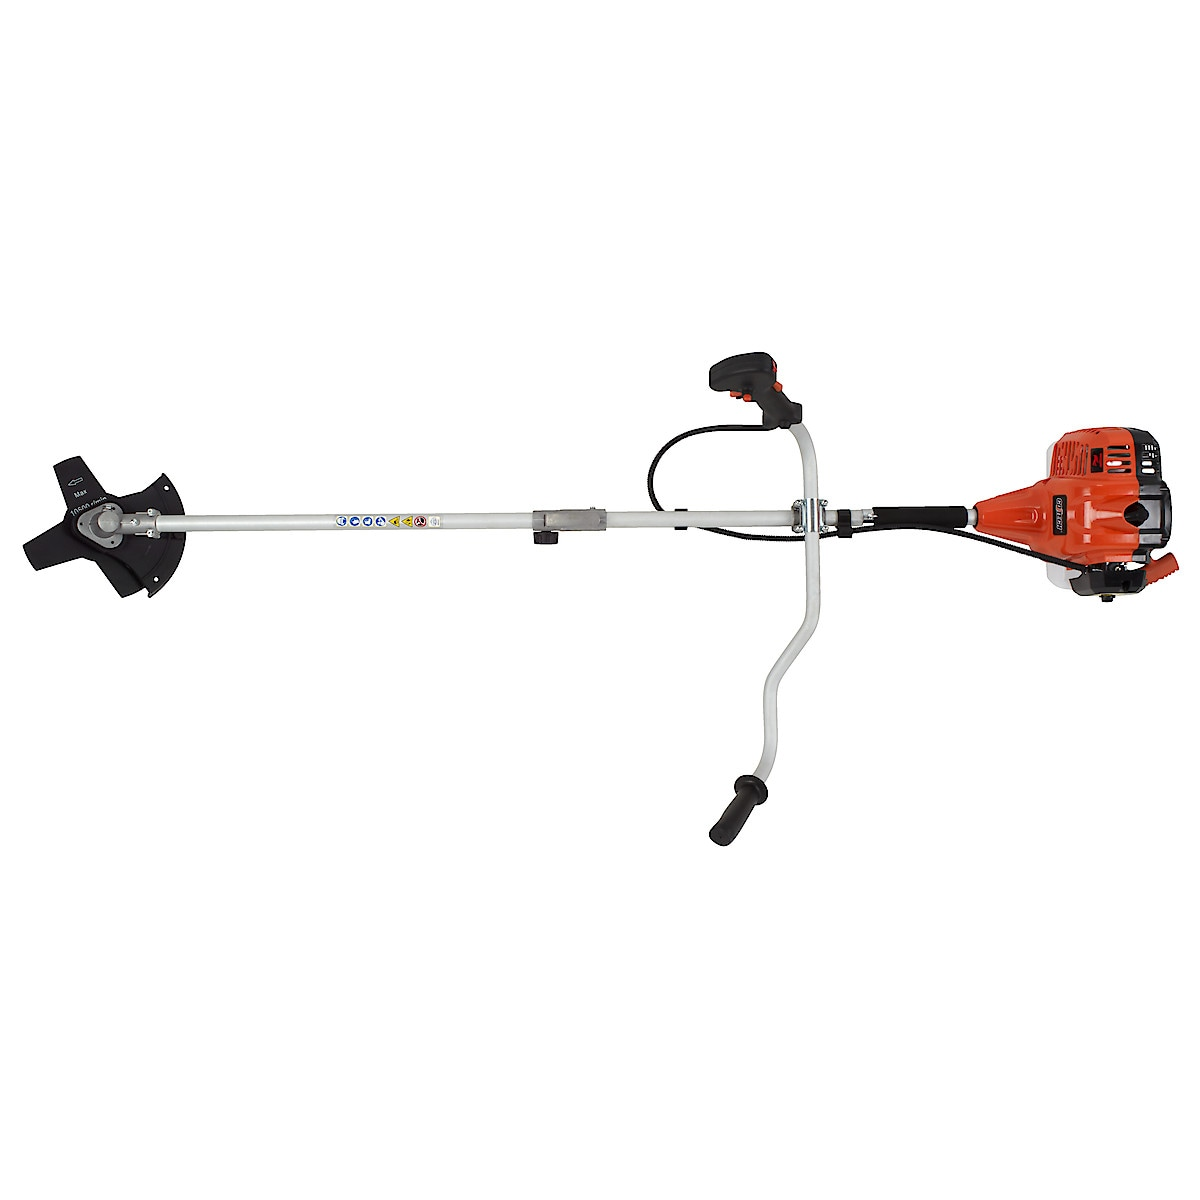 Cotech Brush Cutter/Grass Trimmer